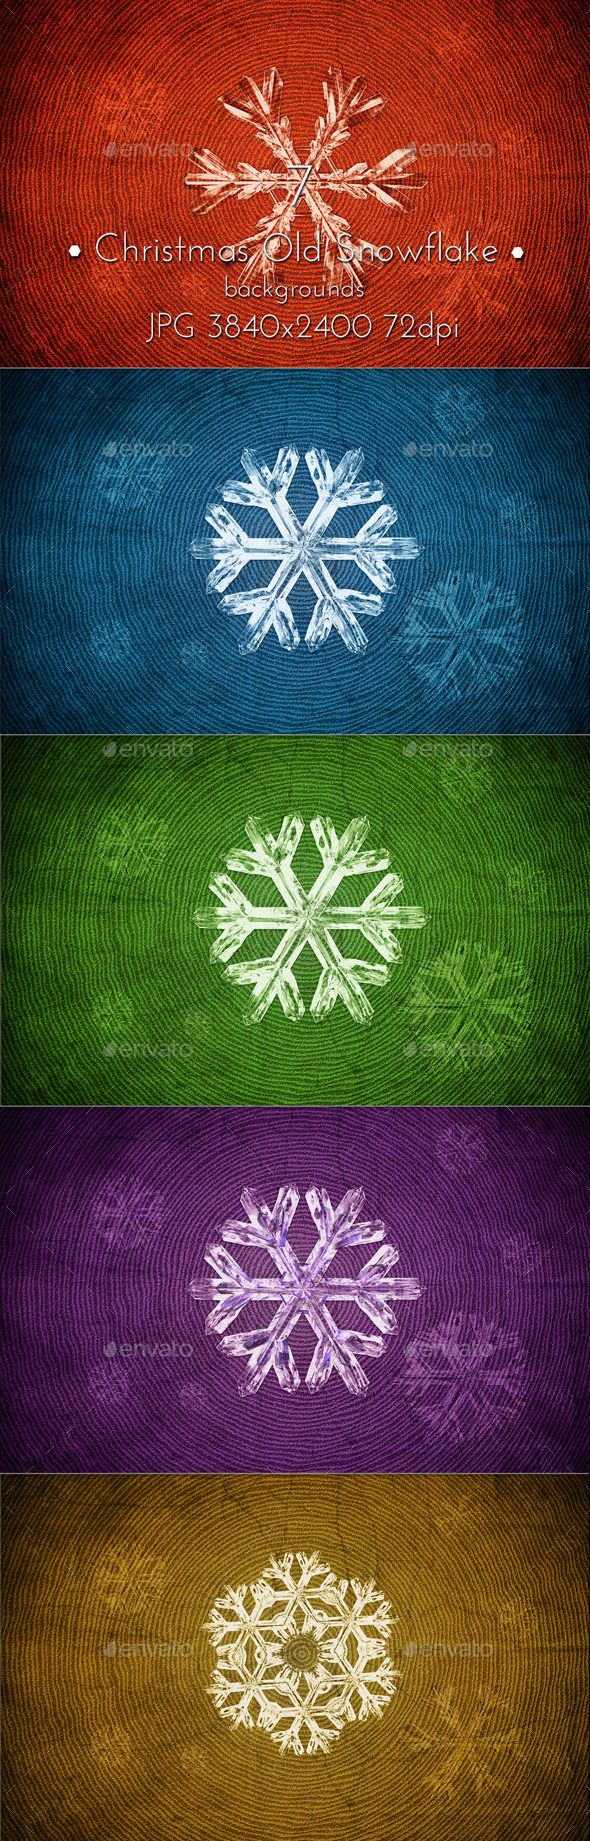 Christmas Snowflakes Old Background by cinema4design. #graphicriver #christmasbackground #snowflakes